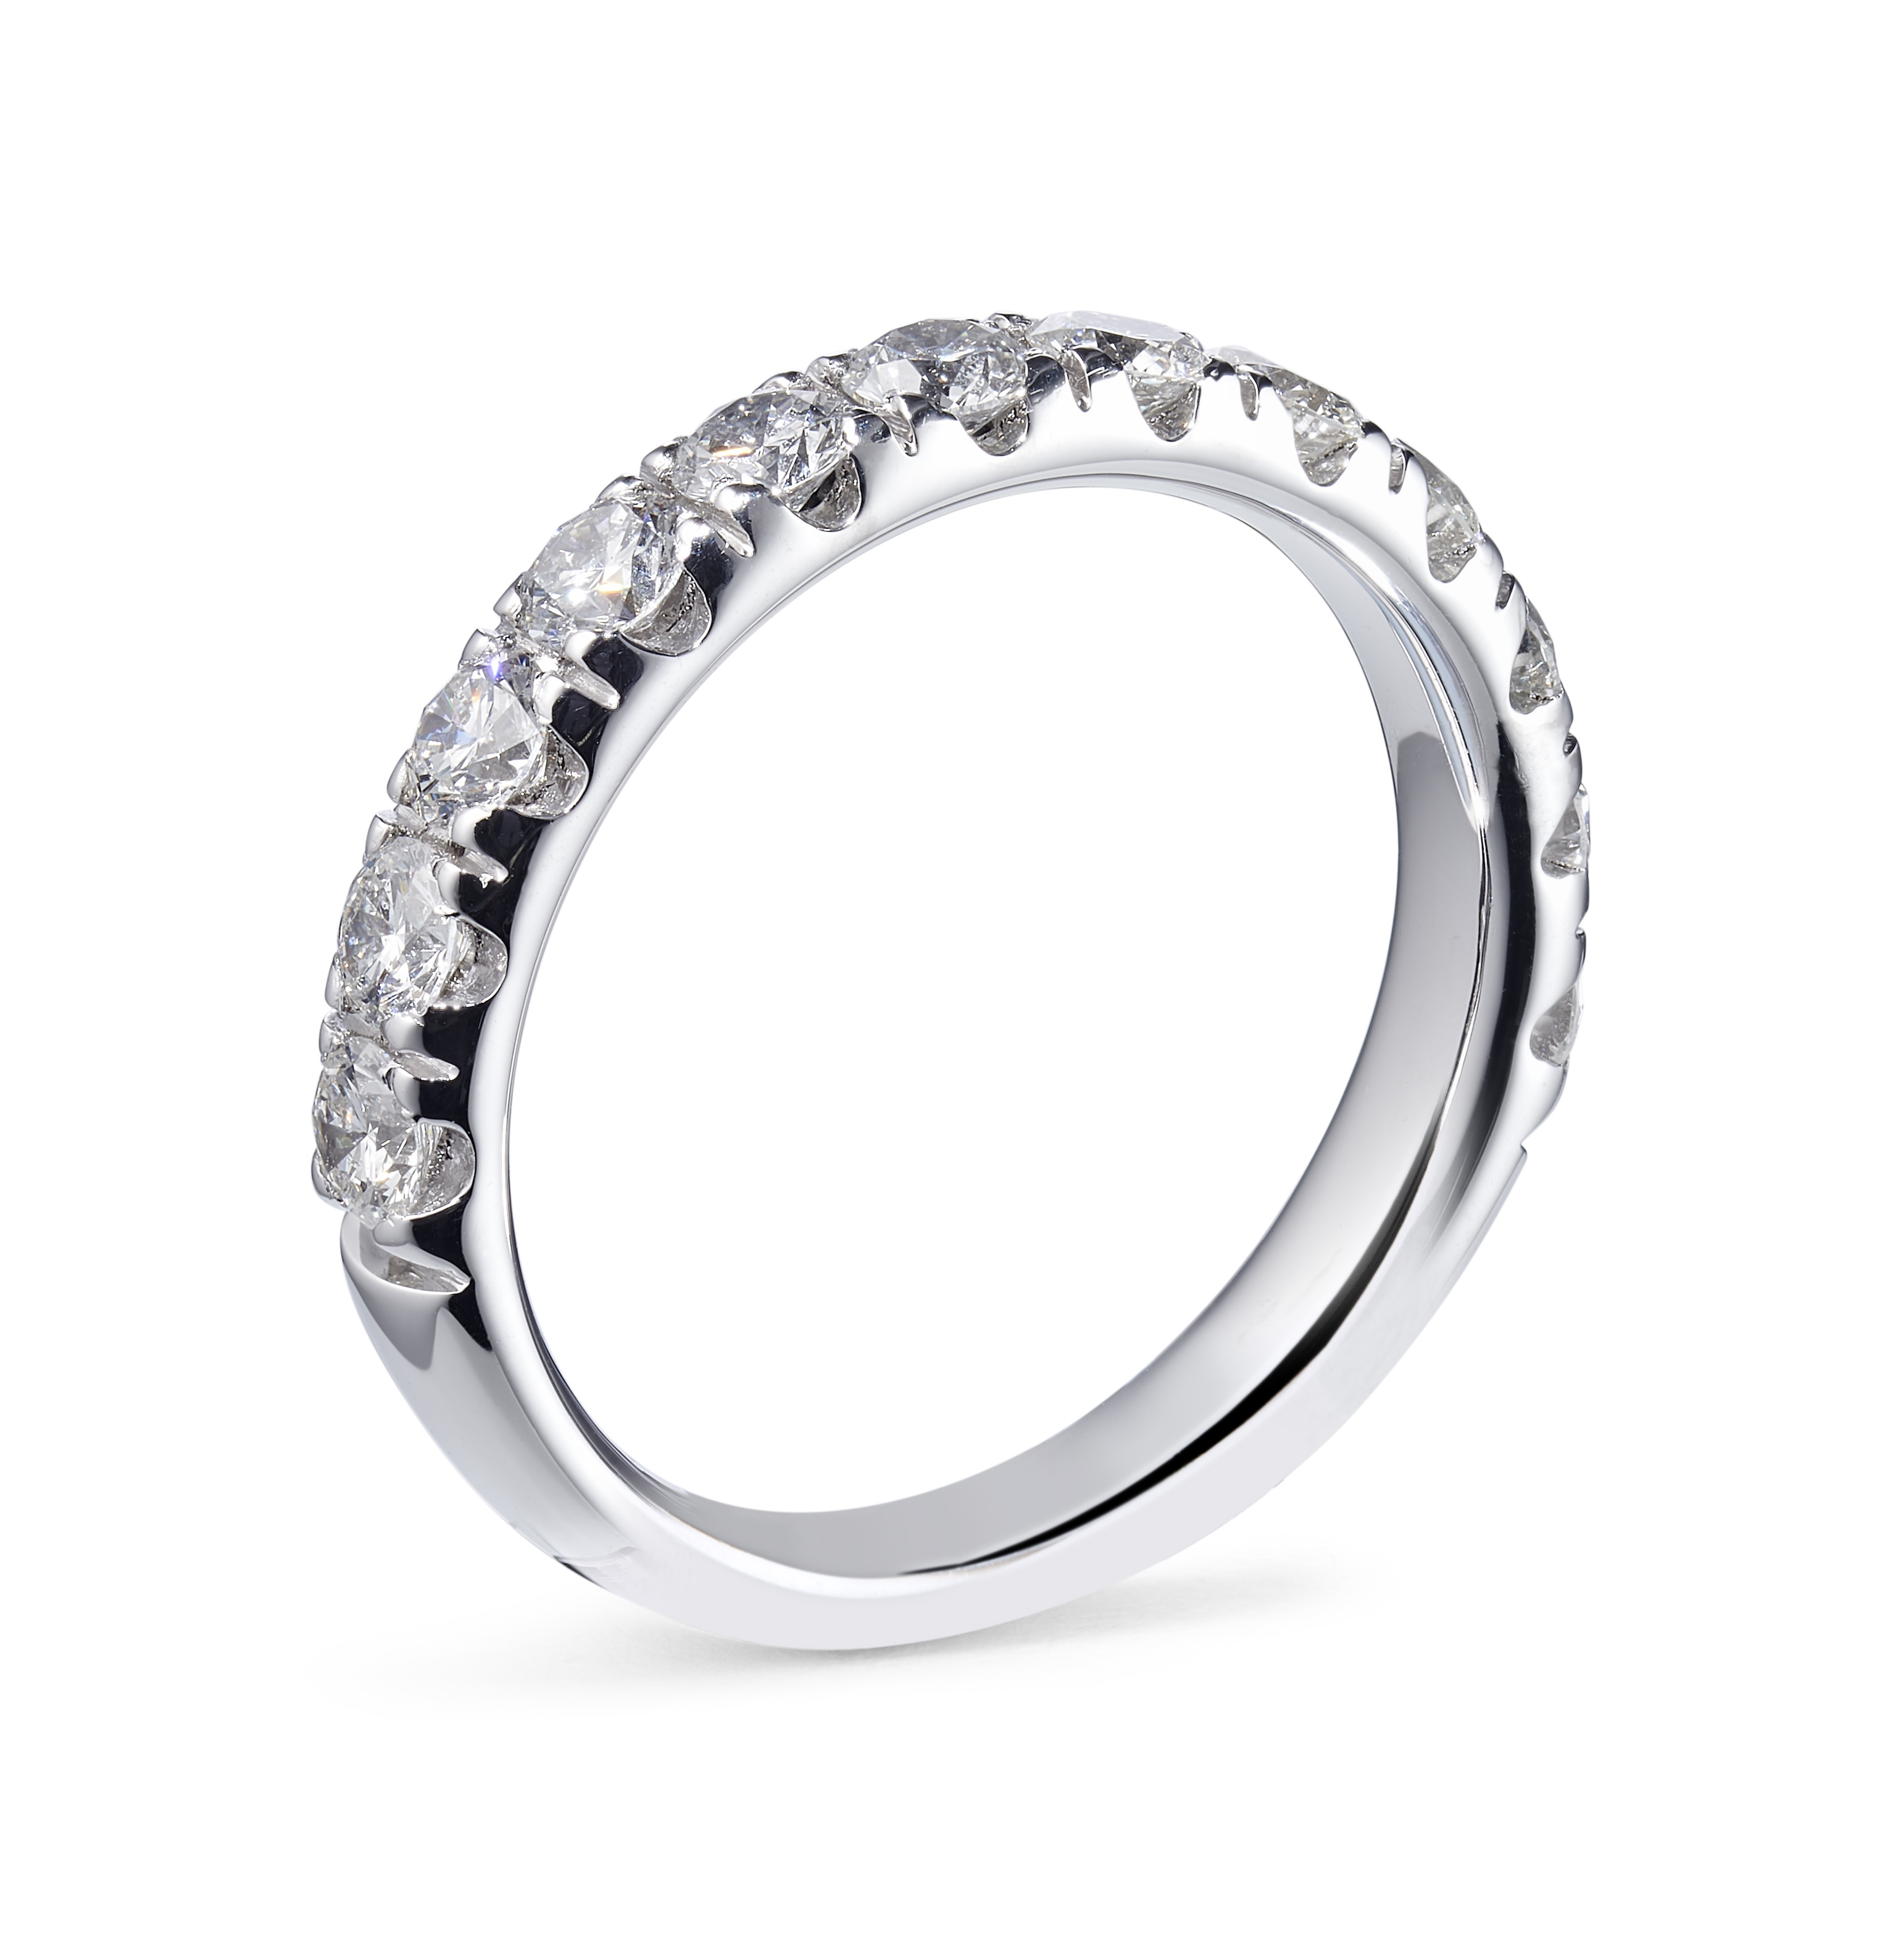 1.38ct Platinum Mounted Micro-Claw Set Eternity Ring – Finger Size O